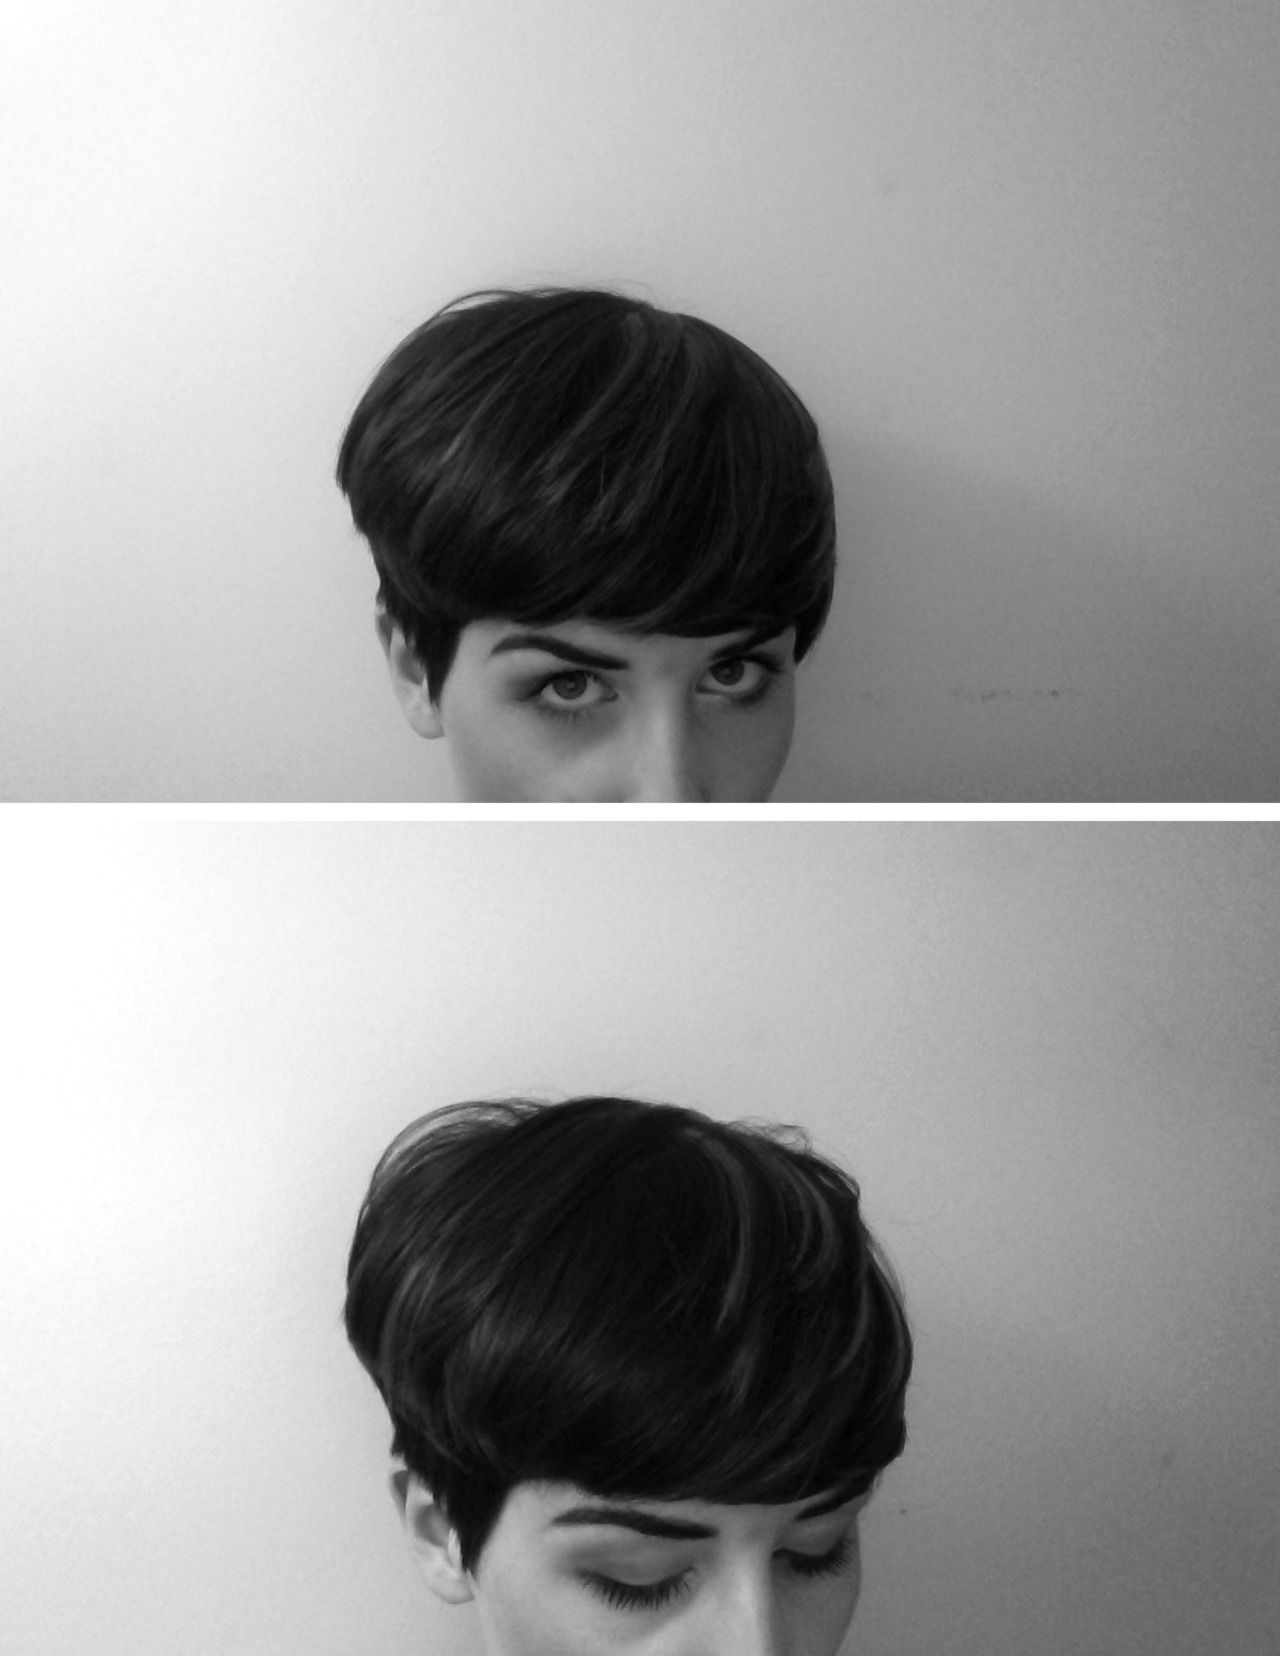 Pin by mélodie renson on Hair Pinterest Short hair Shorts and